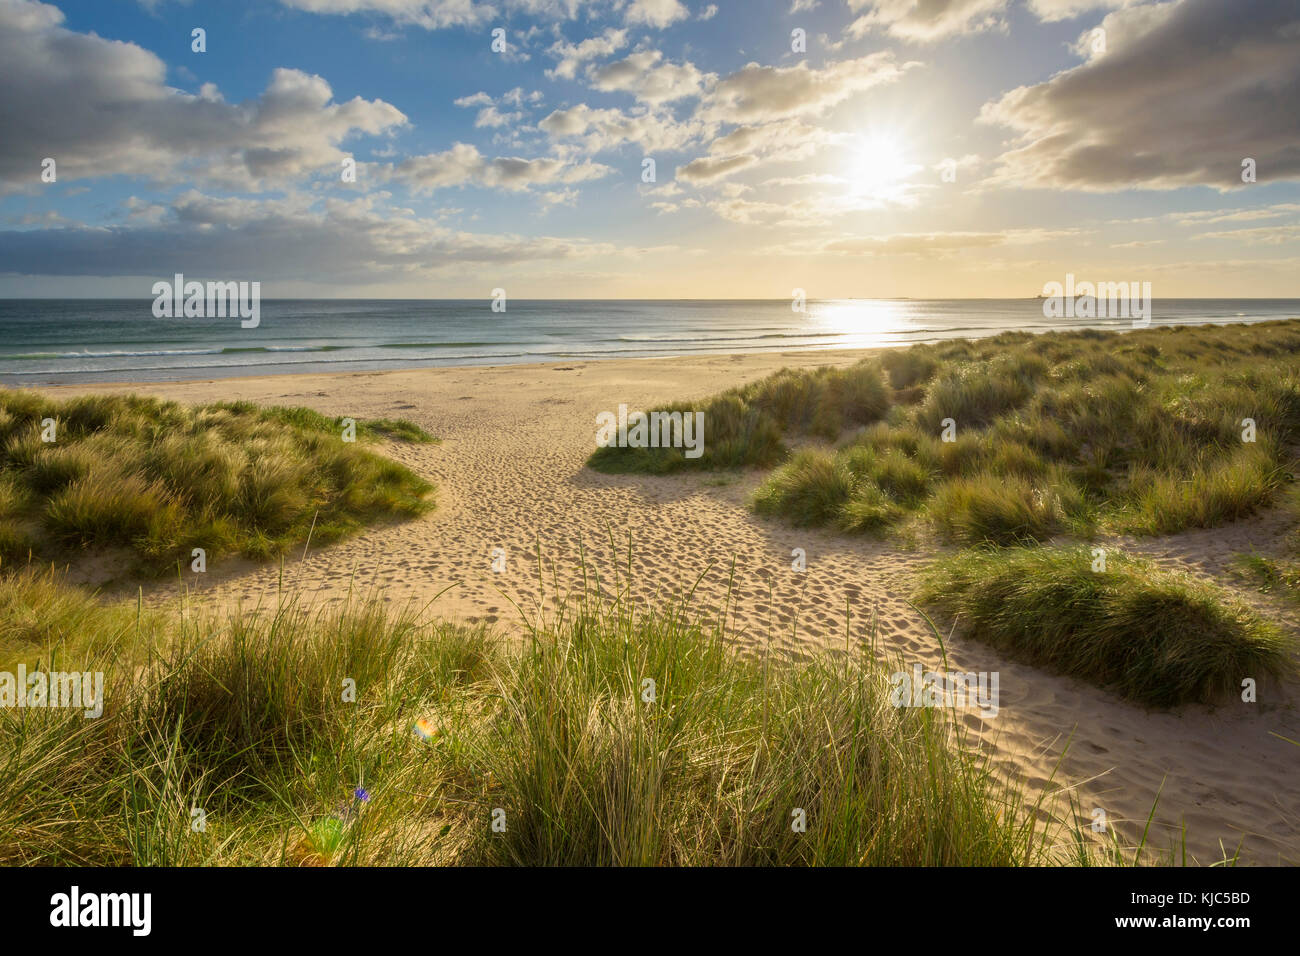 Grassy sand dunes on beach with sun shining over the North Sea at sunrise, Bamburgh in Northumberland, England, - Stock Image